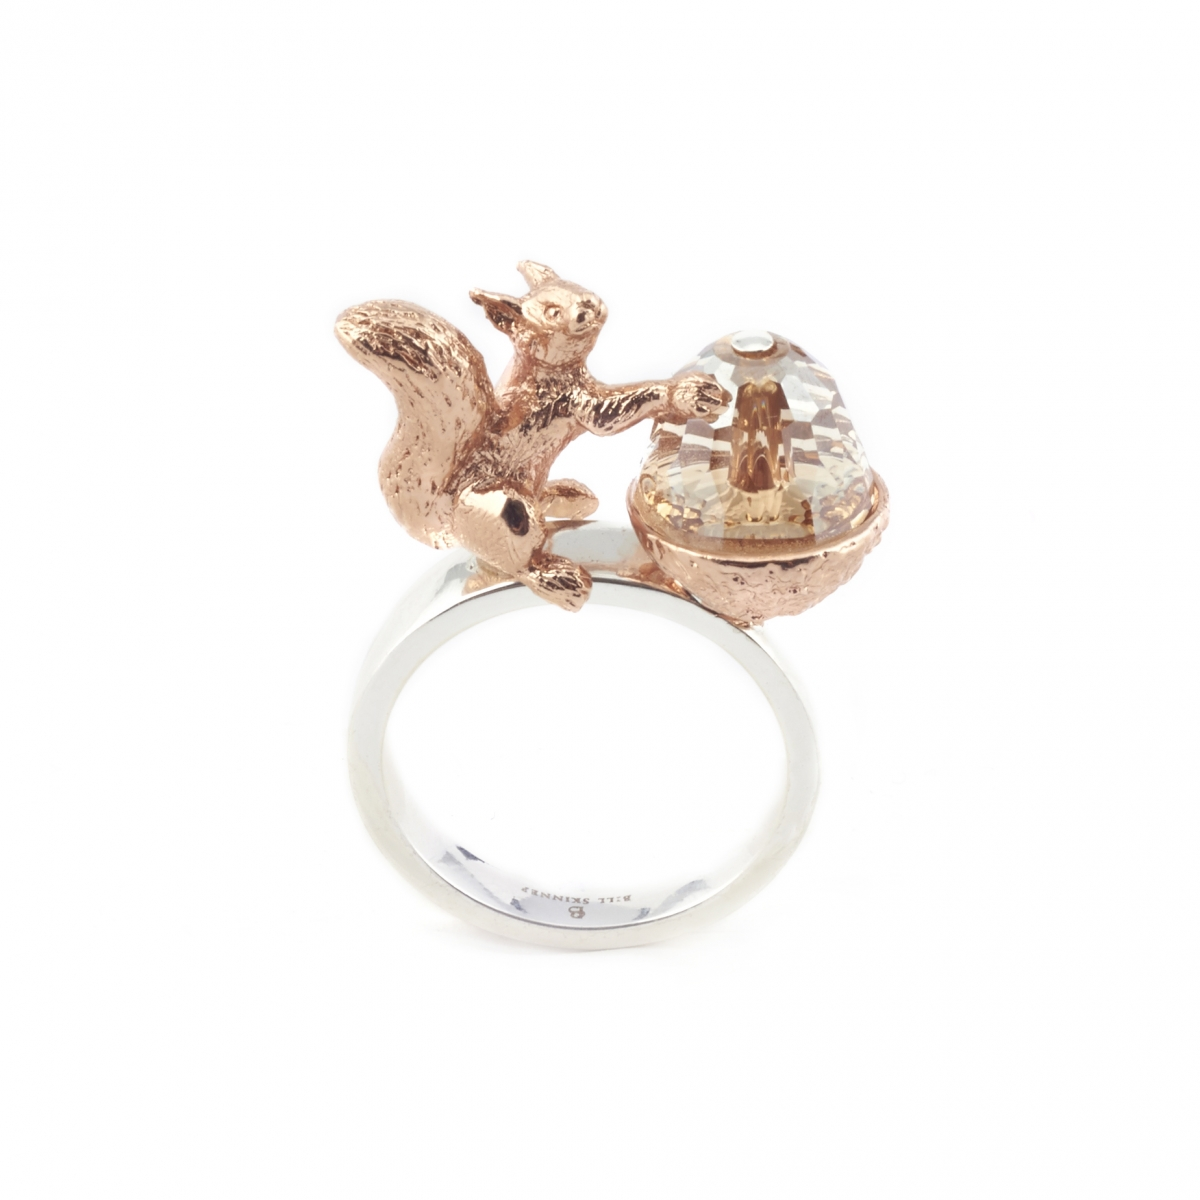 Acorn & Squirrel Ring